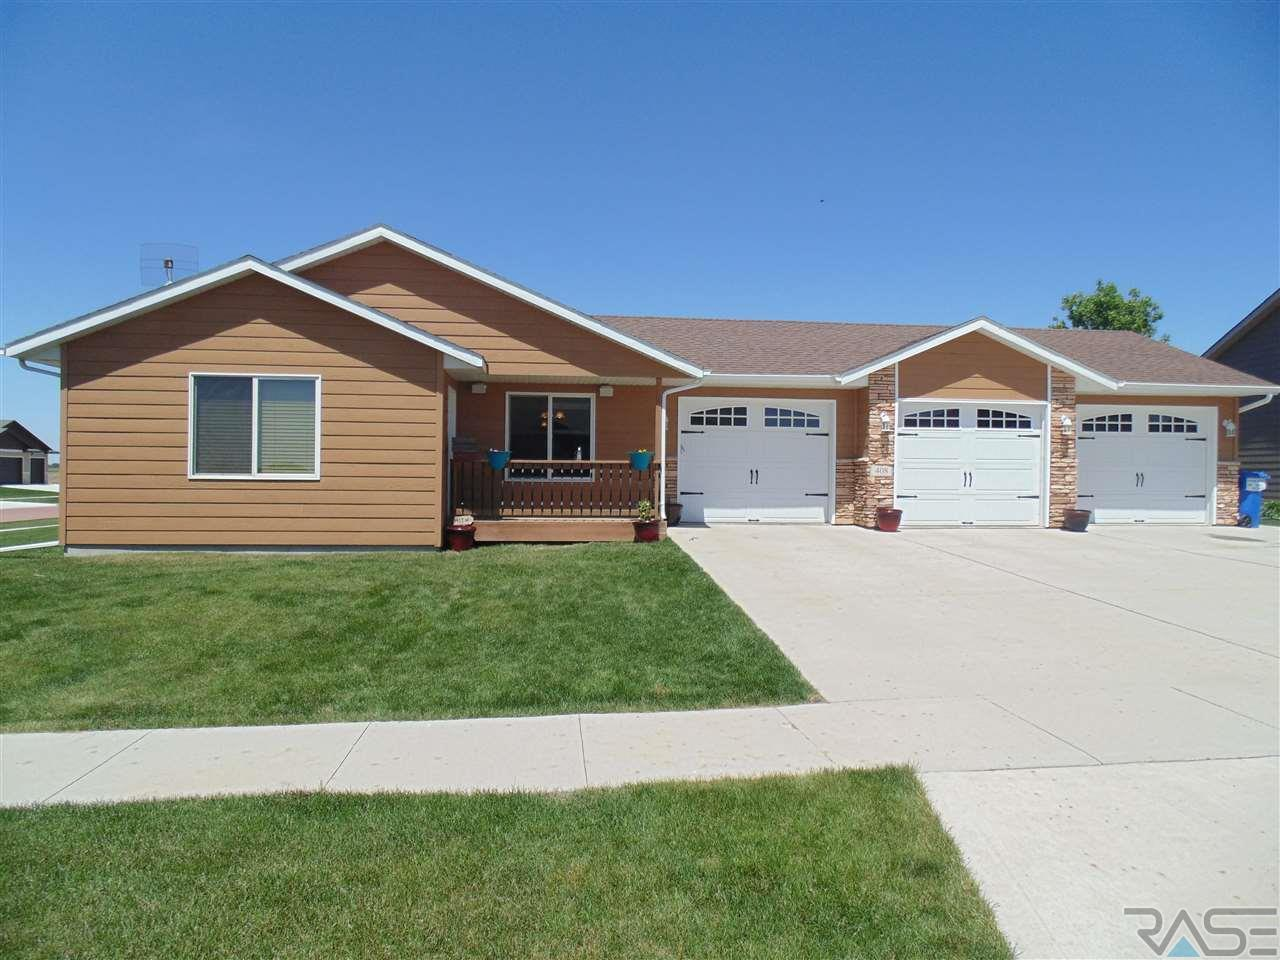 408 W 14th St, Dell Rapids, SD 57022